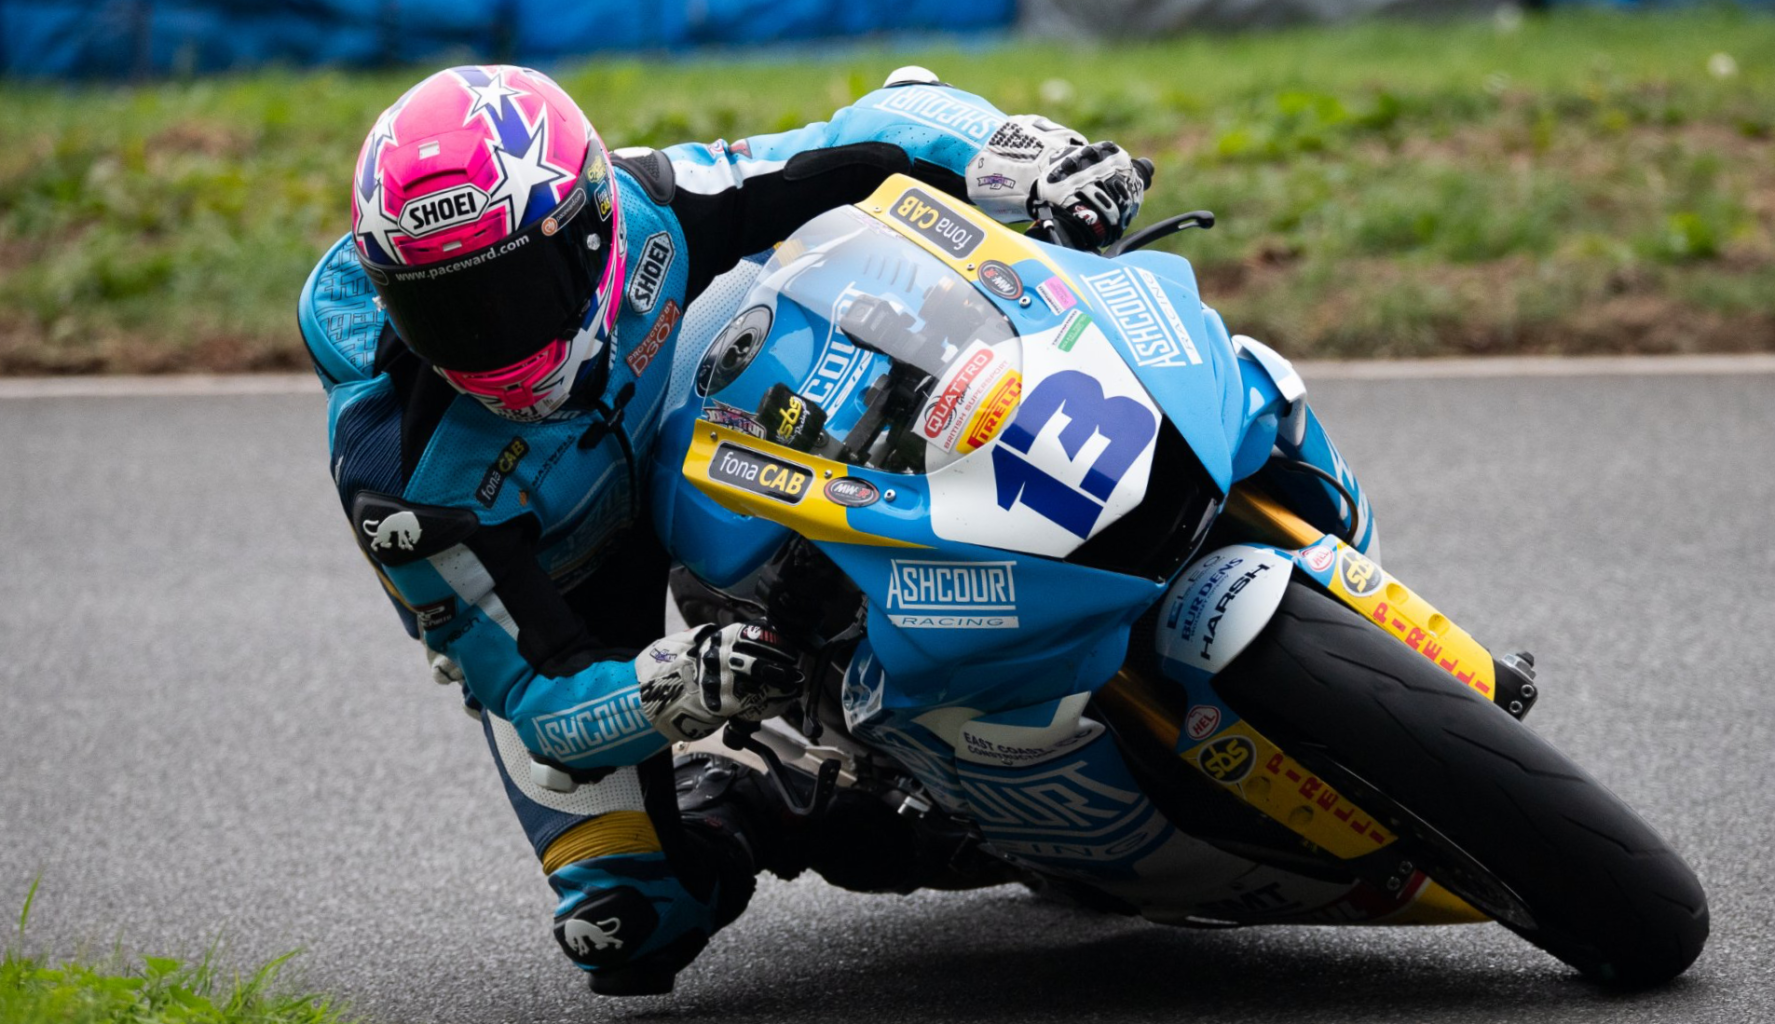 2020 Oliver's Mount Barry Sheene Classic Results : LEE Johnston